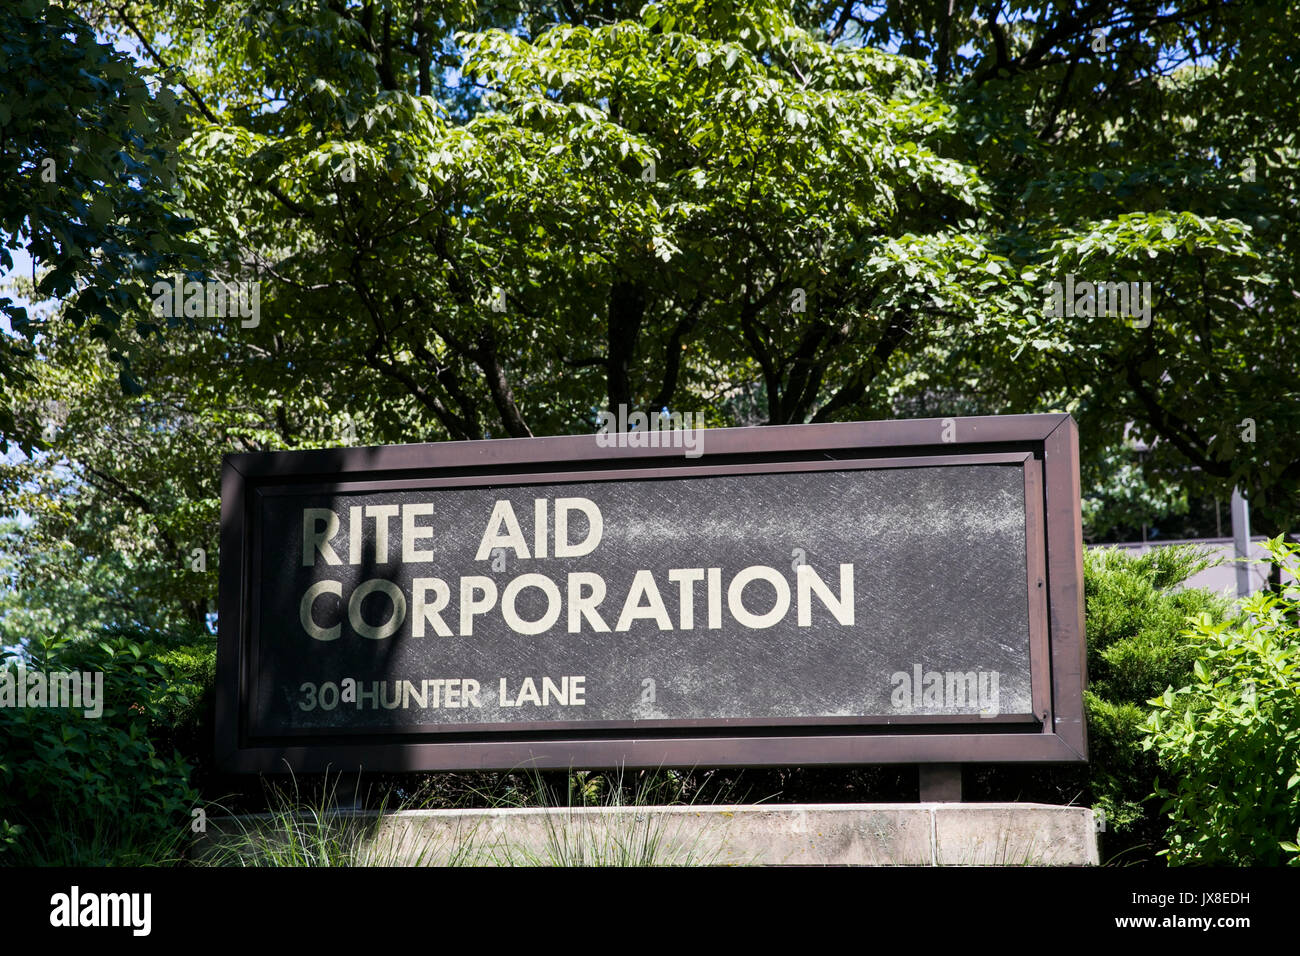 A logo sign outside of the headquarters of the Rite Aid Corporation in Camp Hill, Pennsylvania on July 30, 2017. - Stock Image